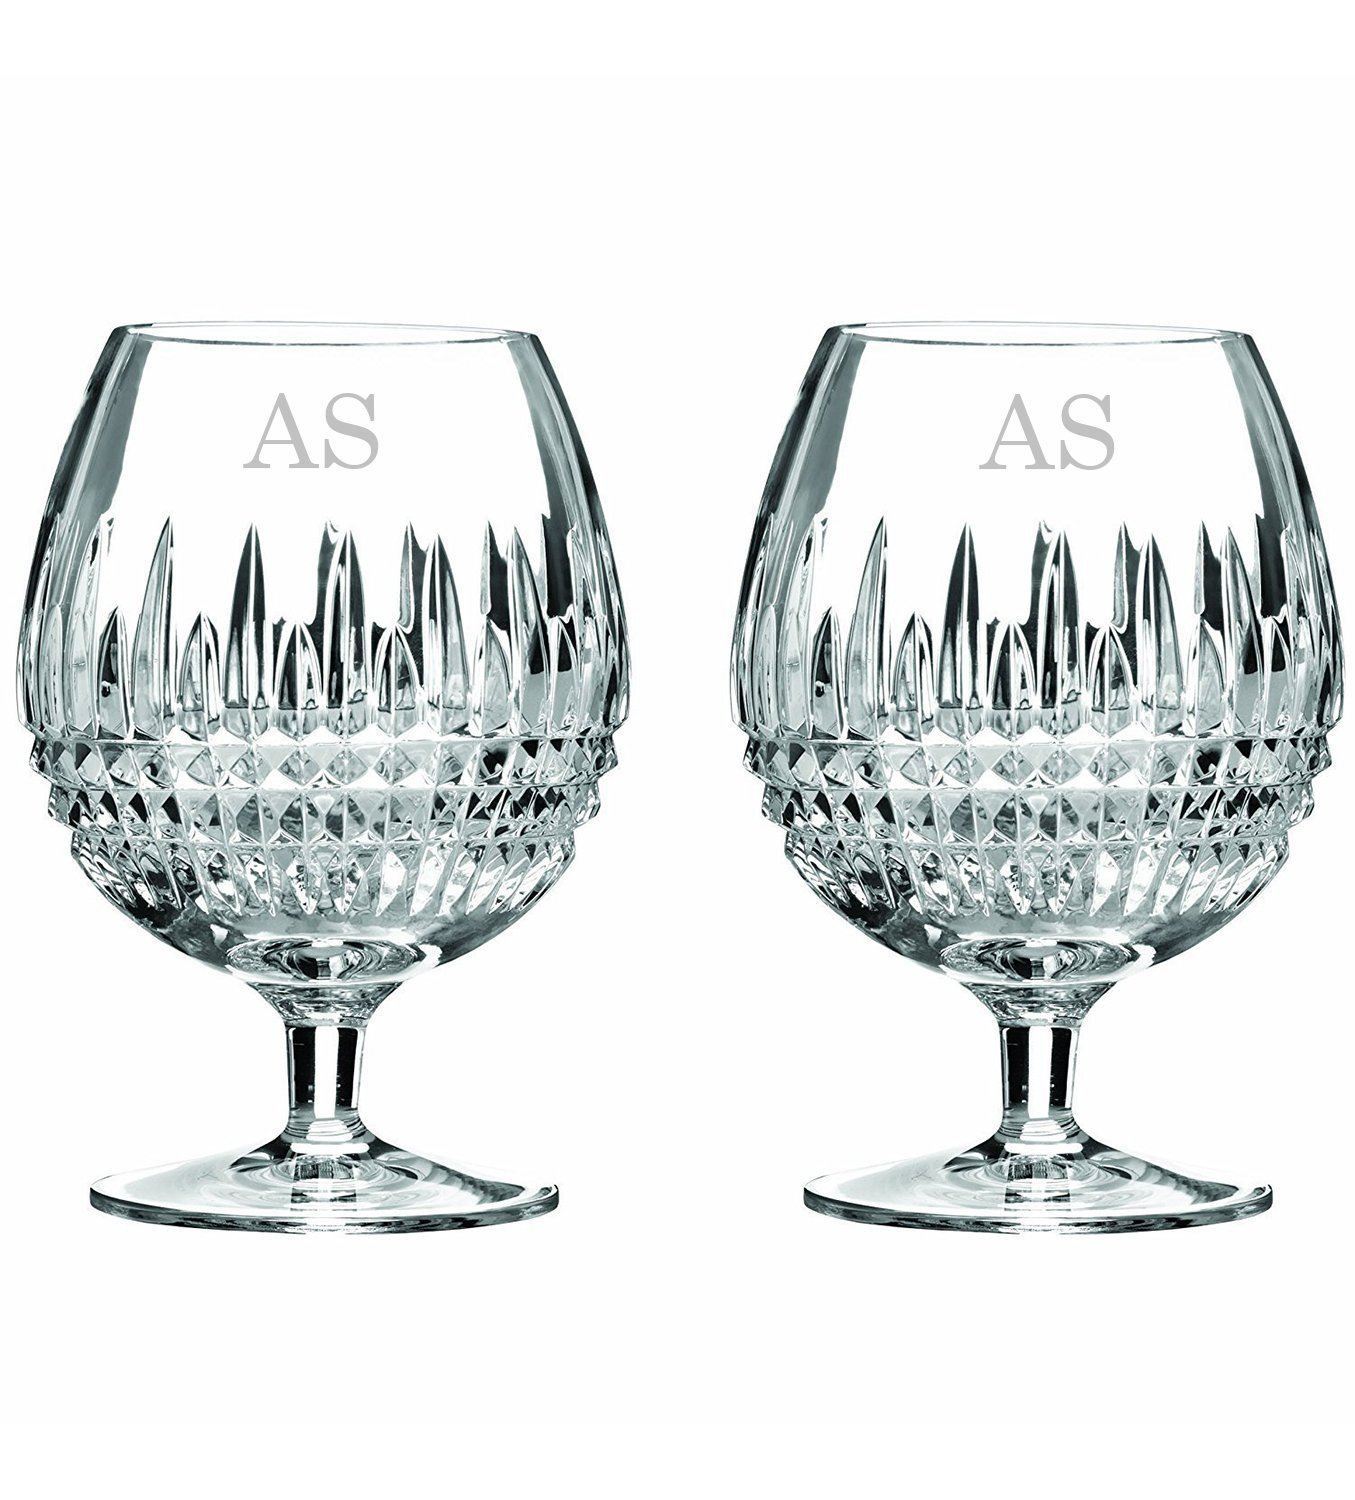 Waterford Lismore Diamond 16oz Brandy Glasses Set of 2, Custom Glasses, Engraved Glass Set, Personalized Glassware by Waterford